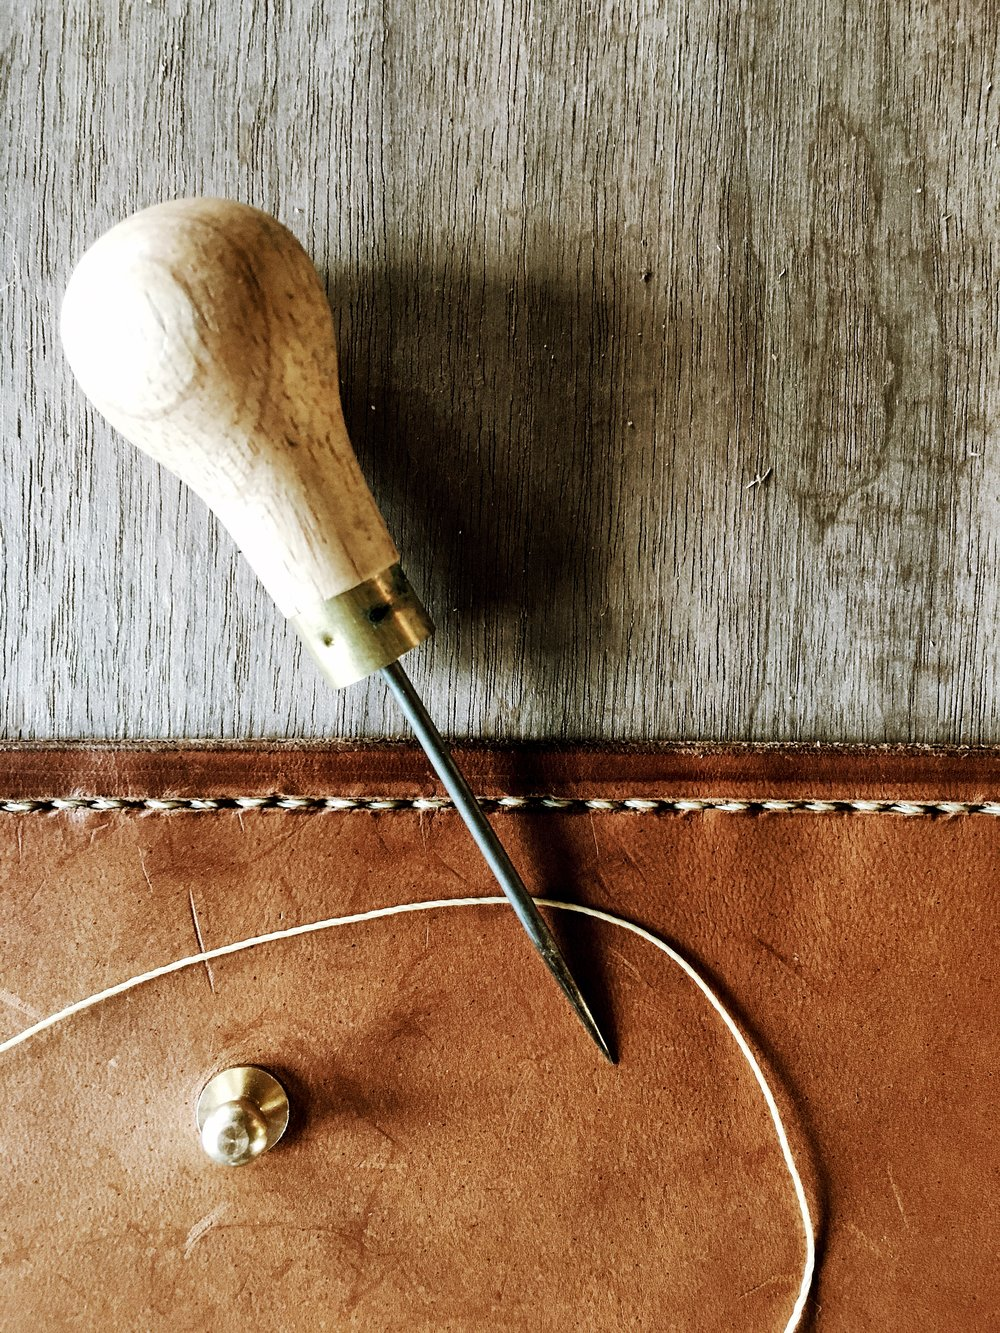 Fish & Bicycle Hand Leather Smithing - photo Juliette Hermant -4